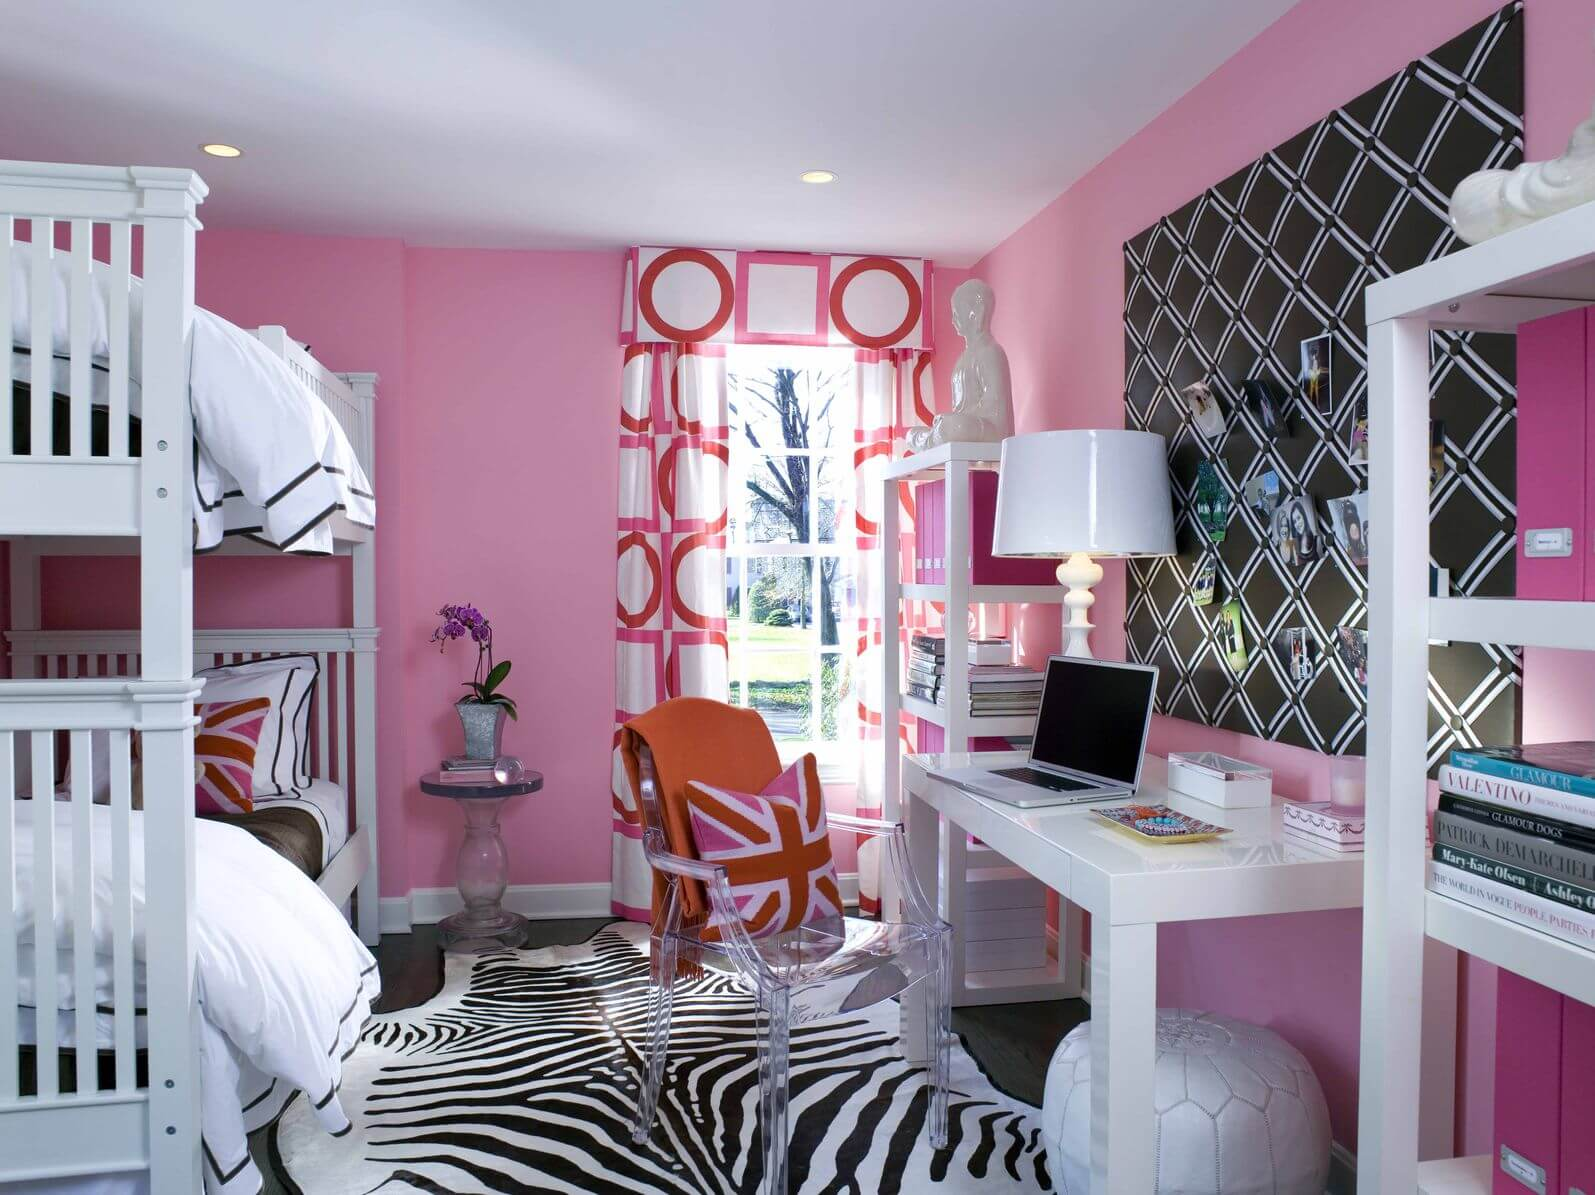 Here's an example of a kid's room incorporating zebra print with a rug.  It's playful